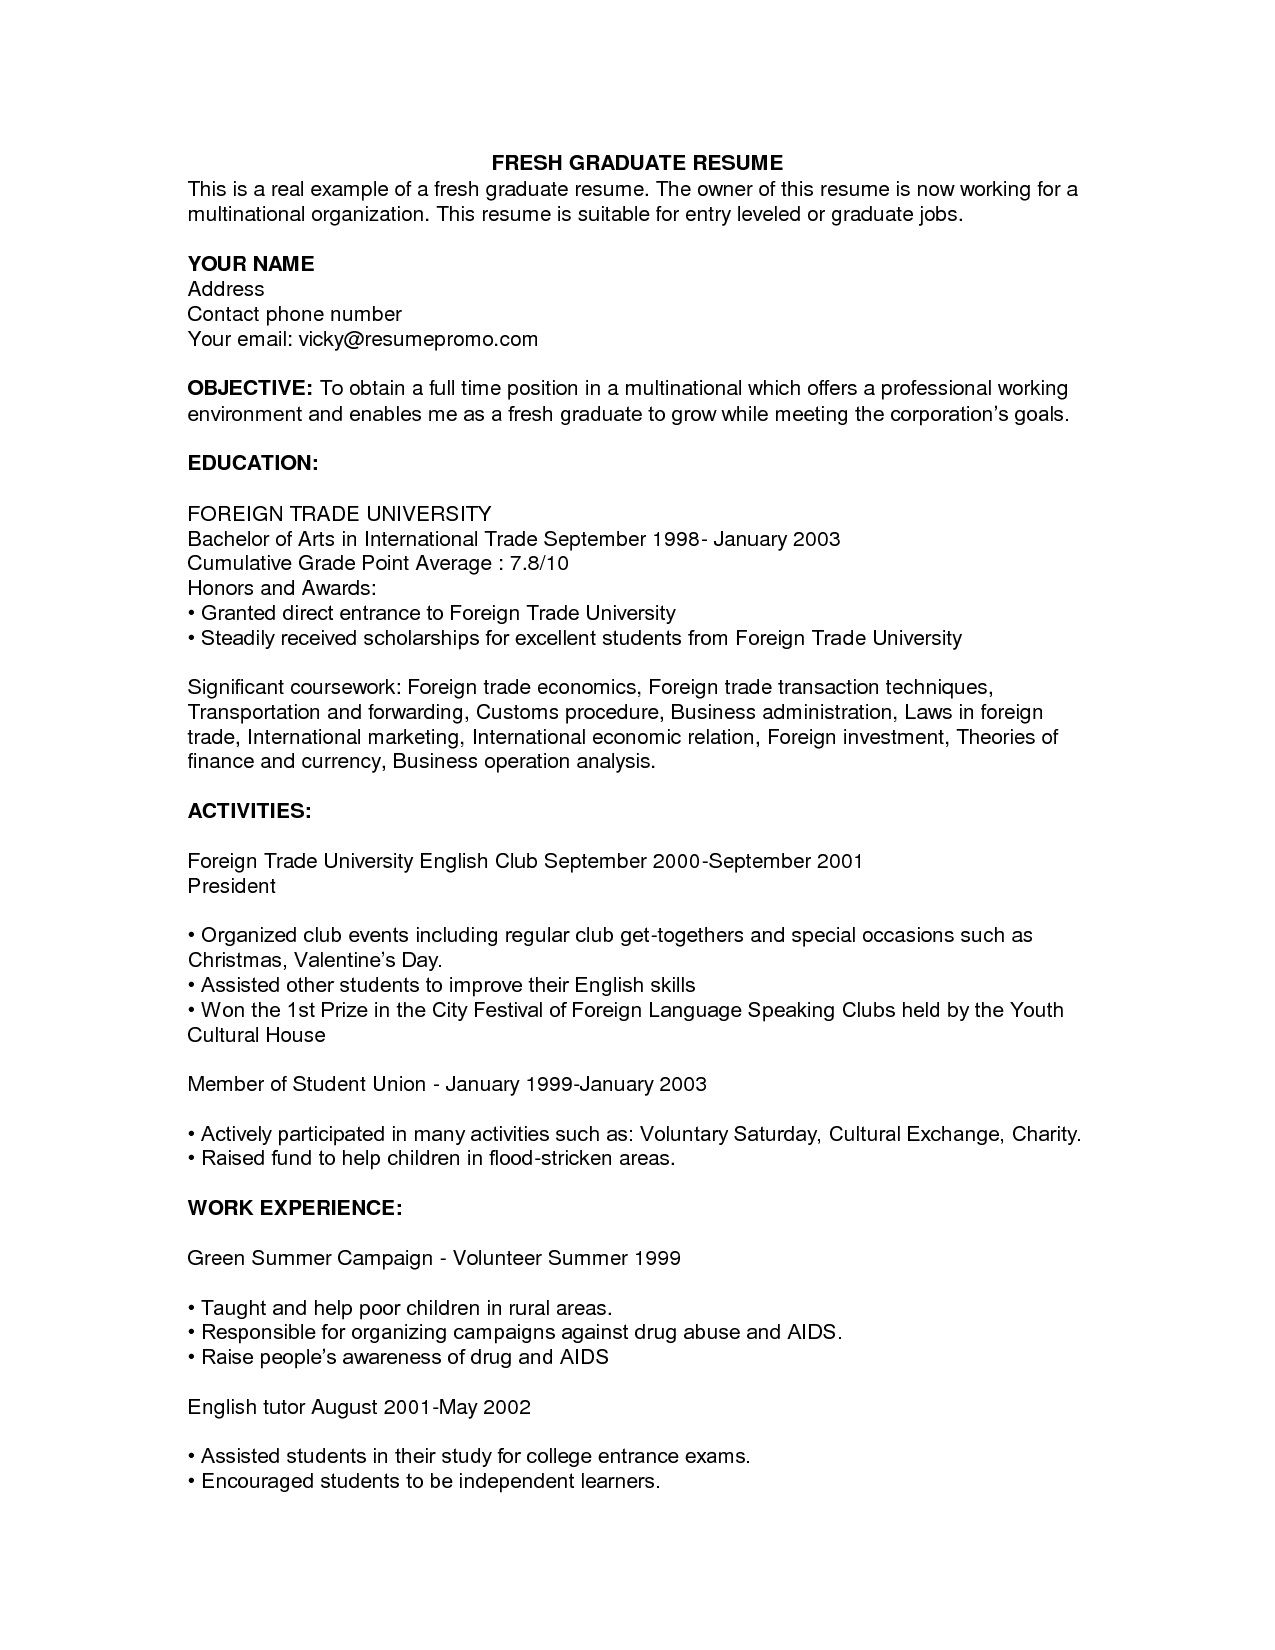 recent graduate resume template